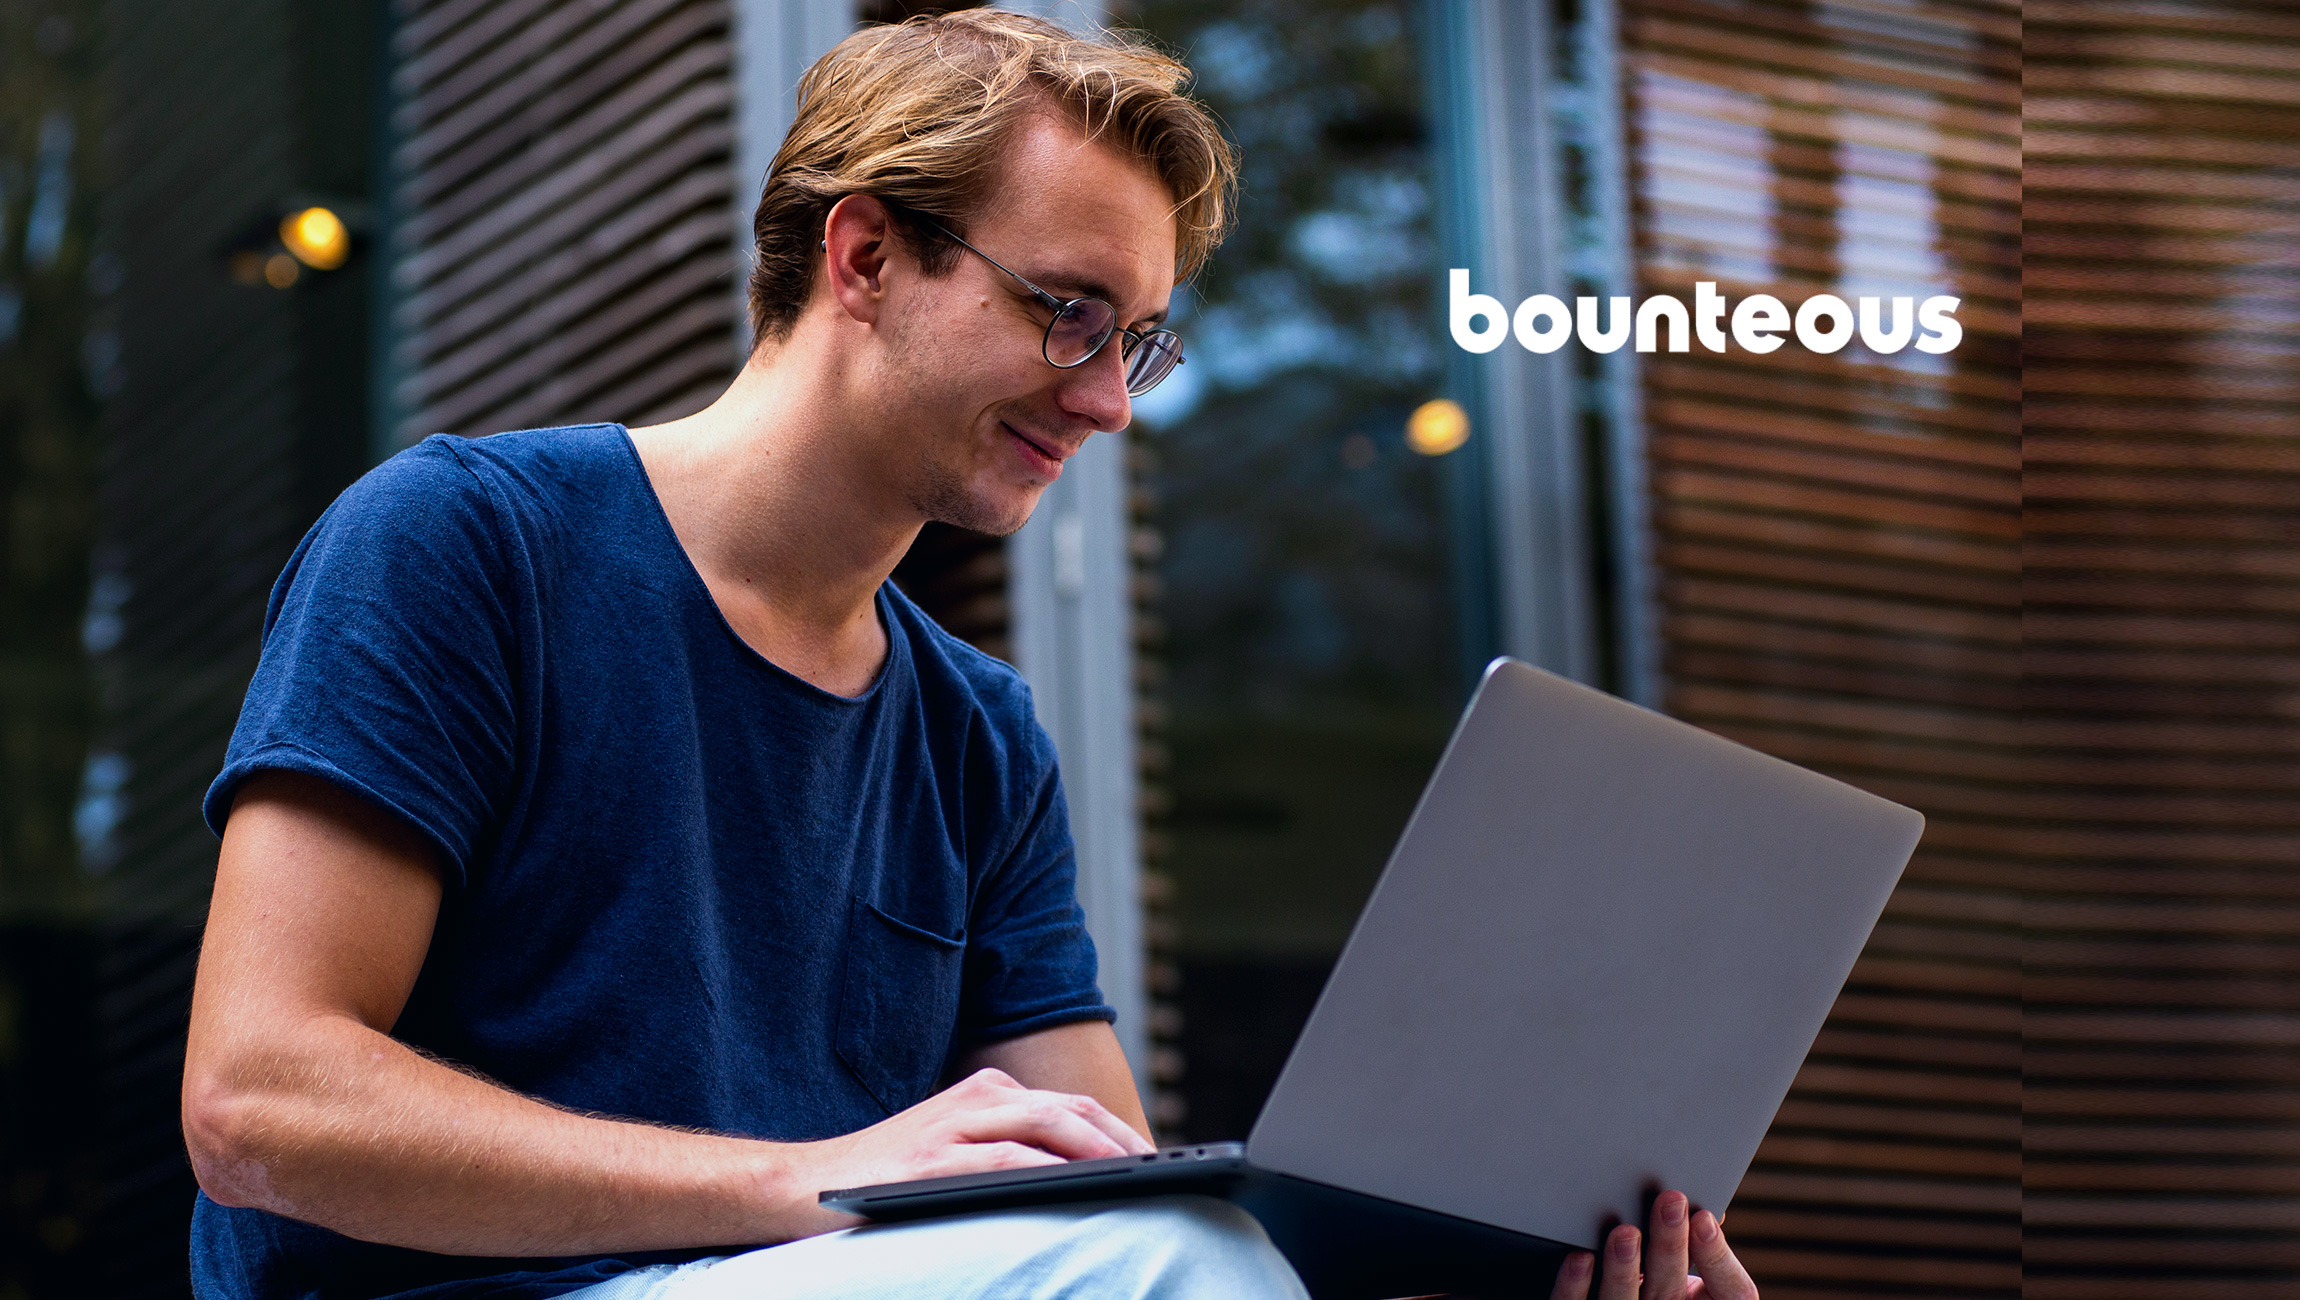 Bounteous Announces Expanded Google Training Program